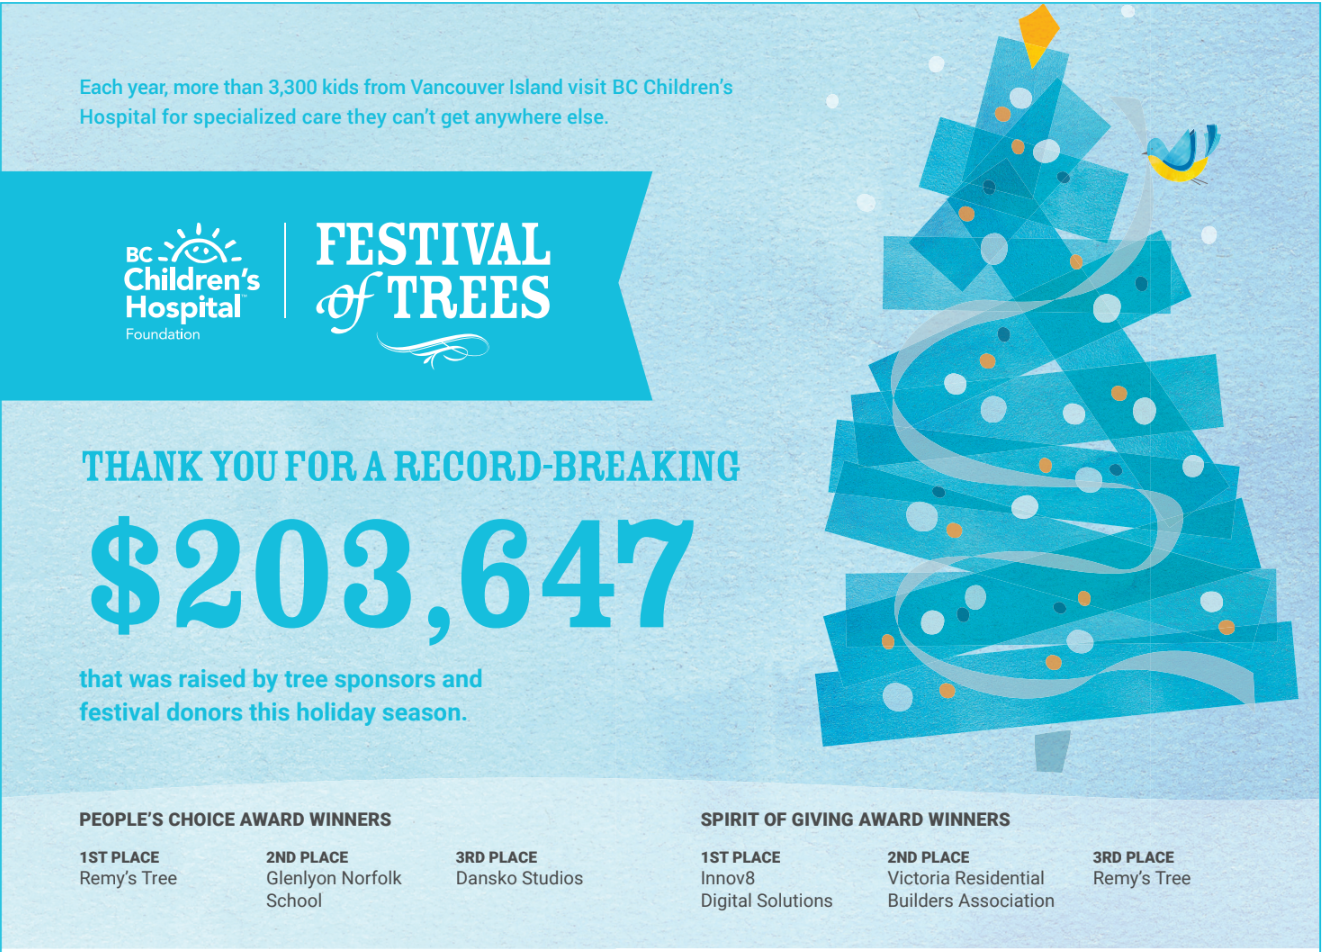 festival-of-trees-record-year-of-fundraising